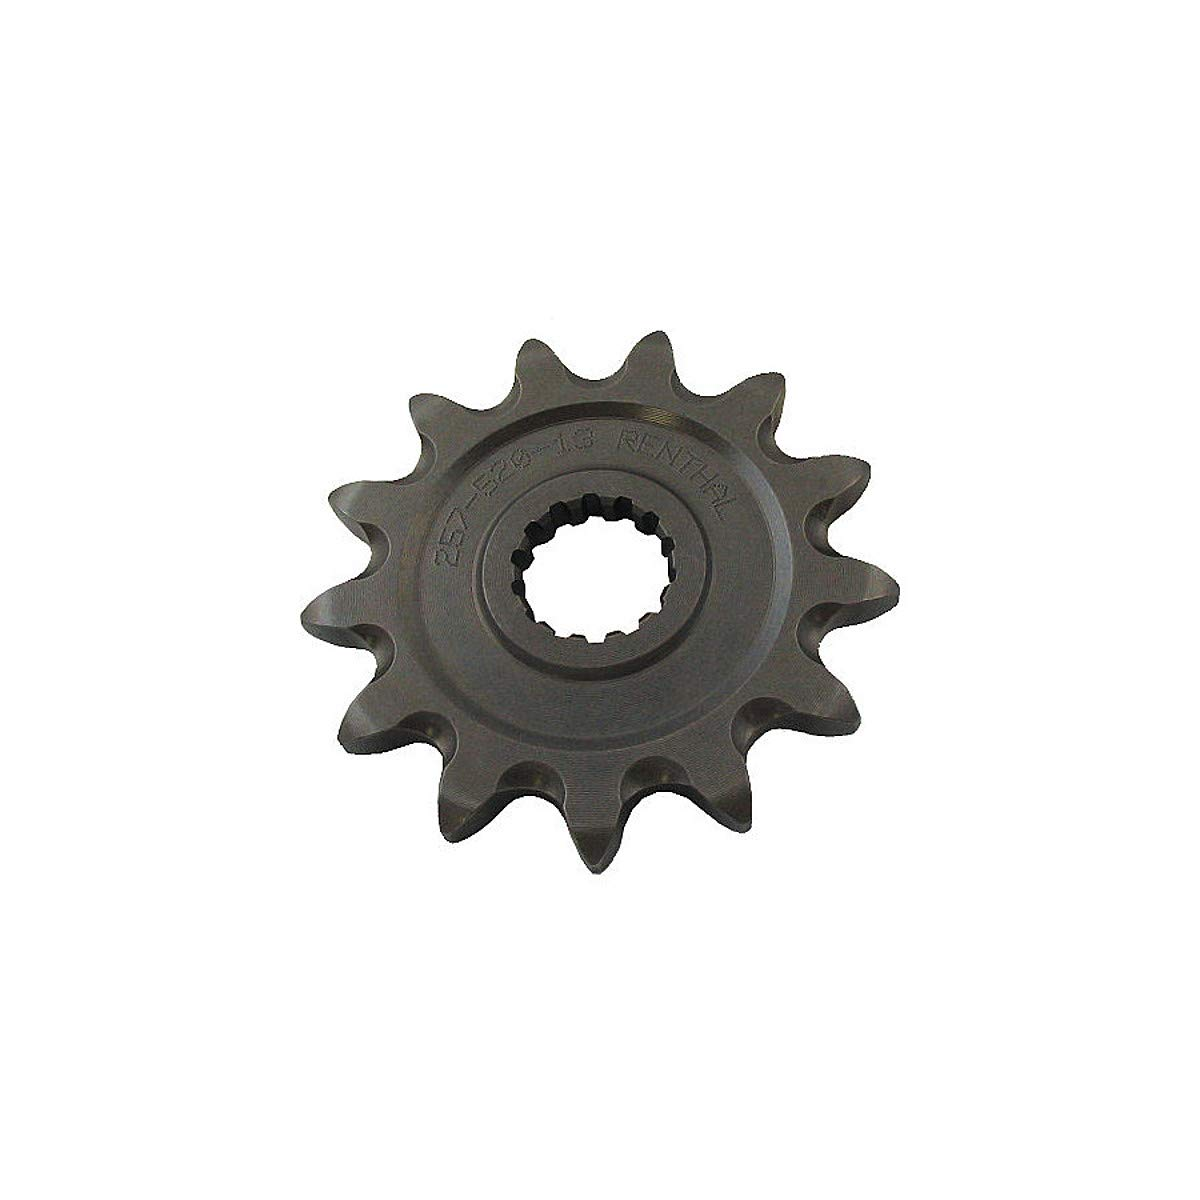 Renthal Front Sprocket (520 / 13T) Compatible with 13-18 Honda CRF250L